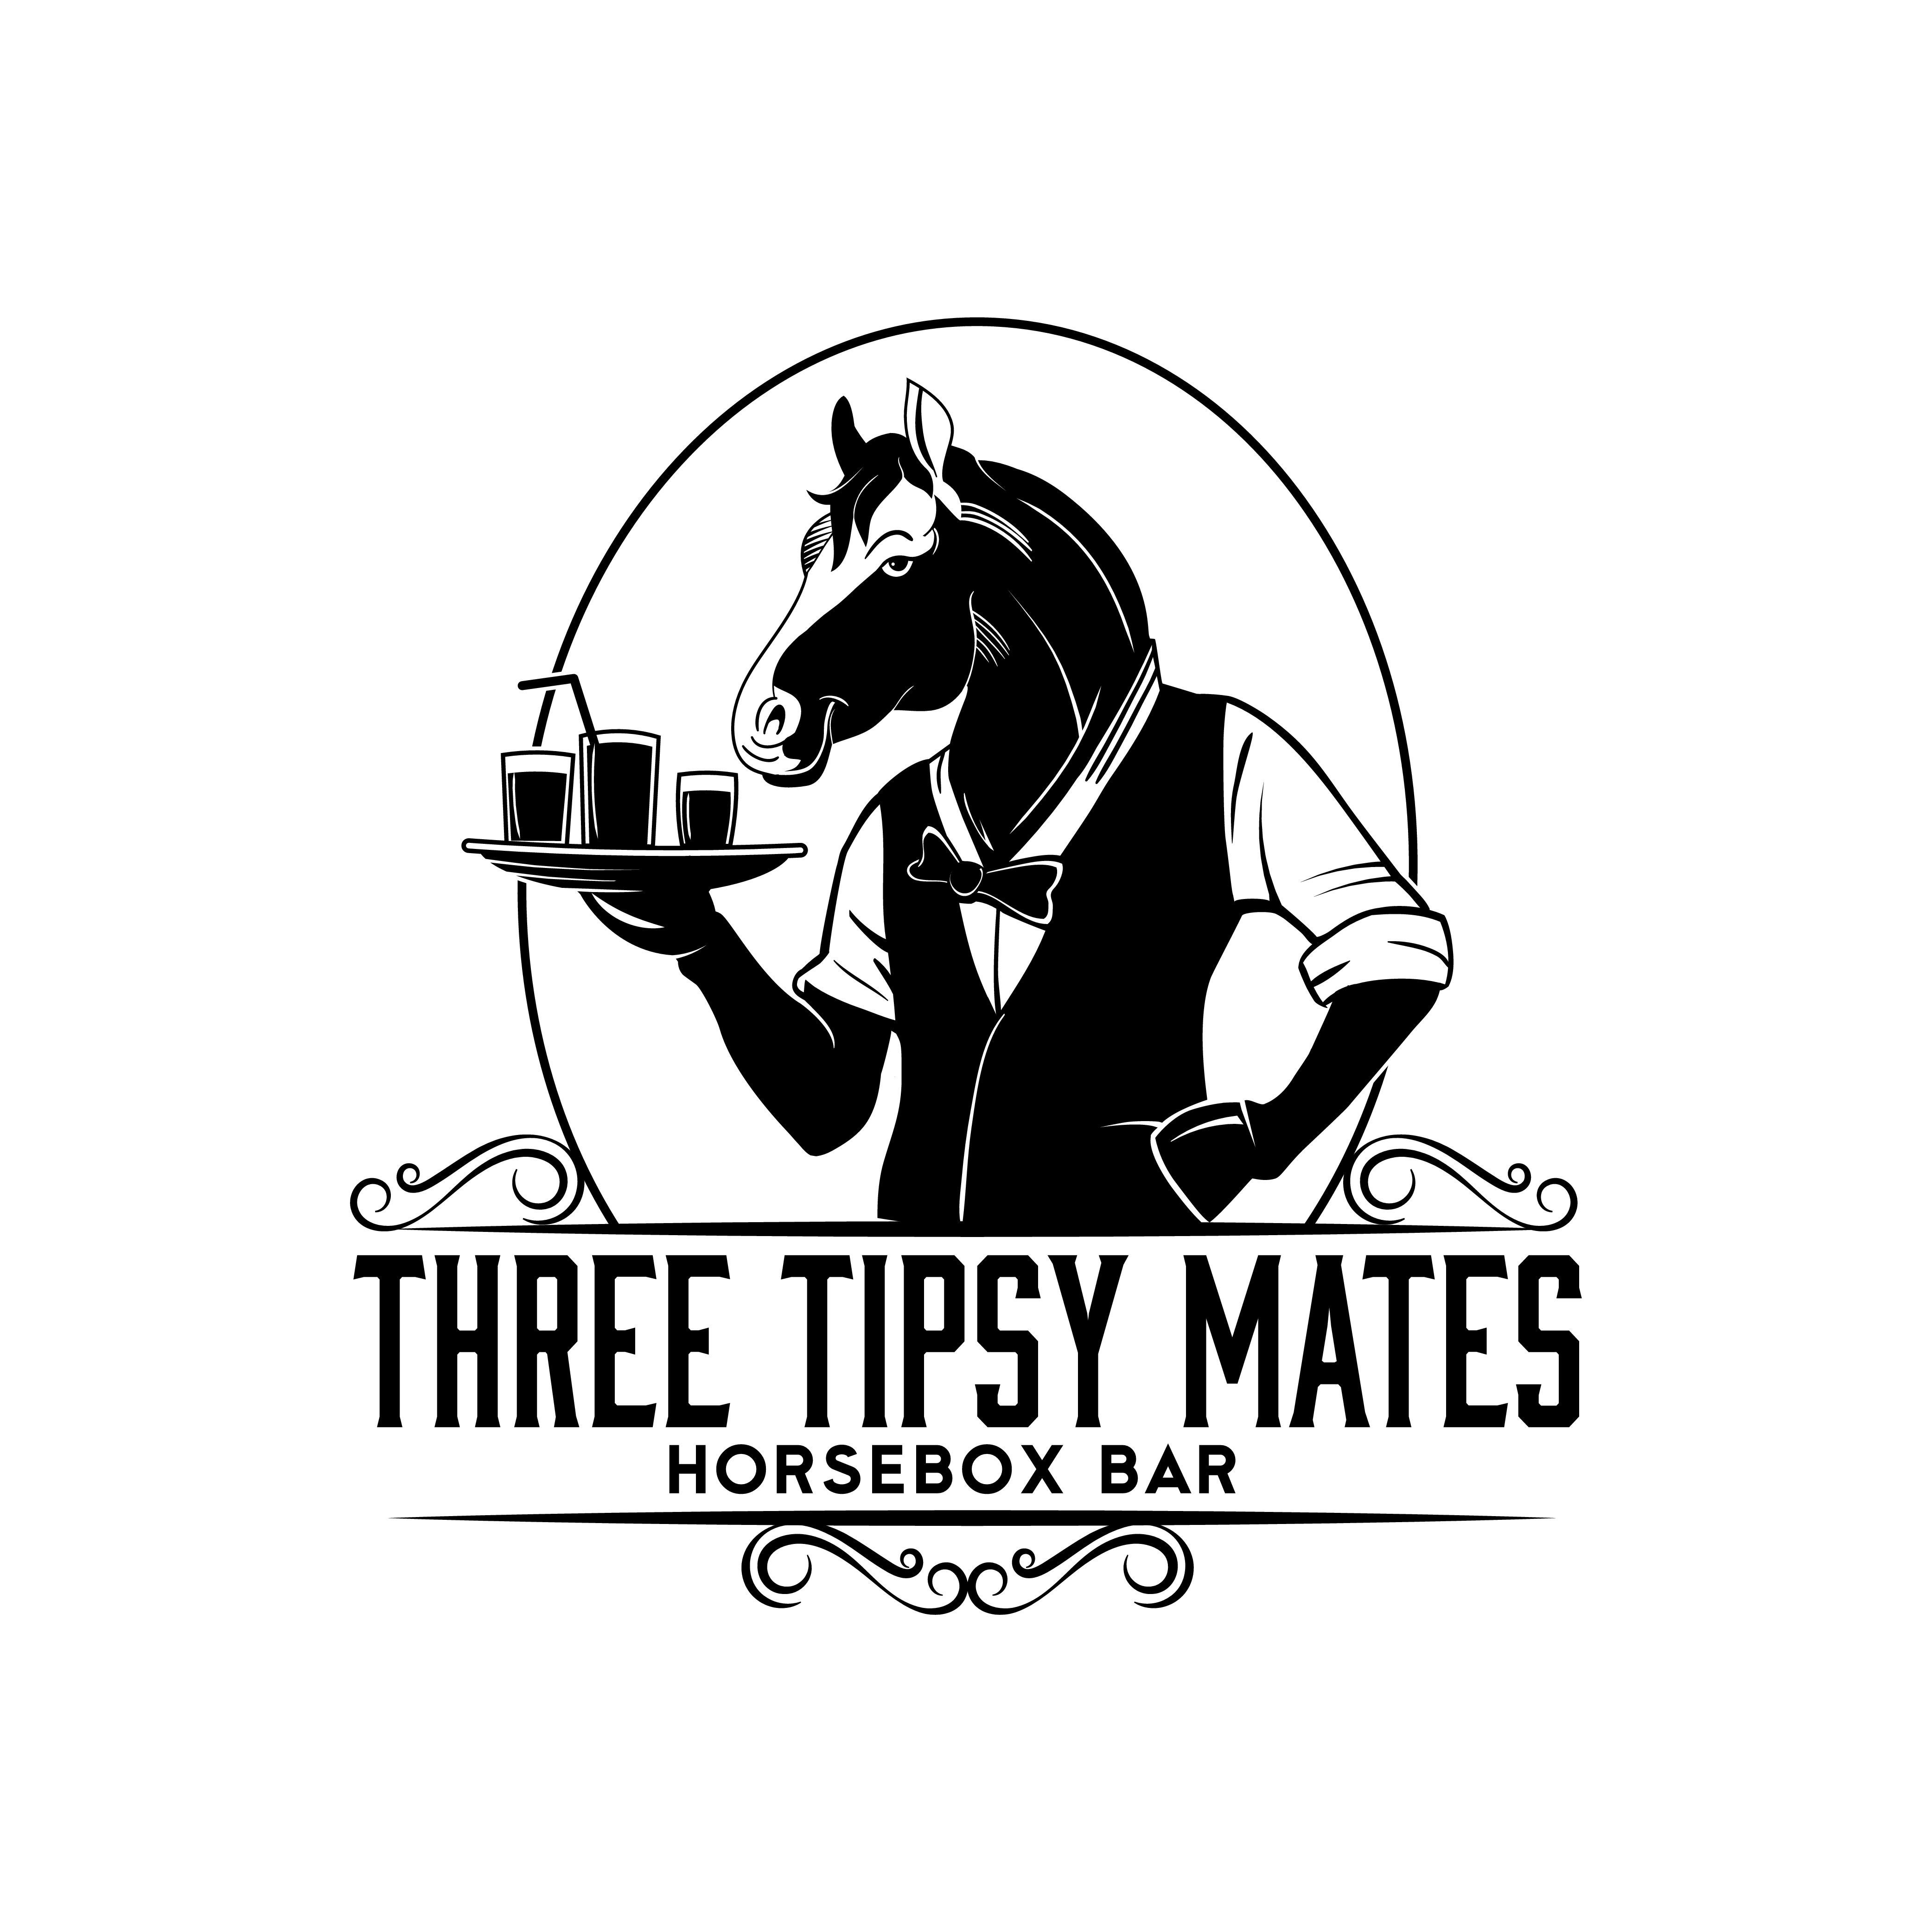 Wanted!! A unique and quirky logo for a vintage style horsebox bar